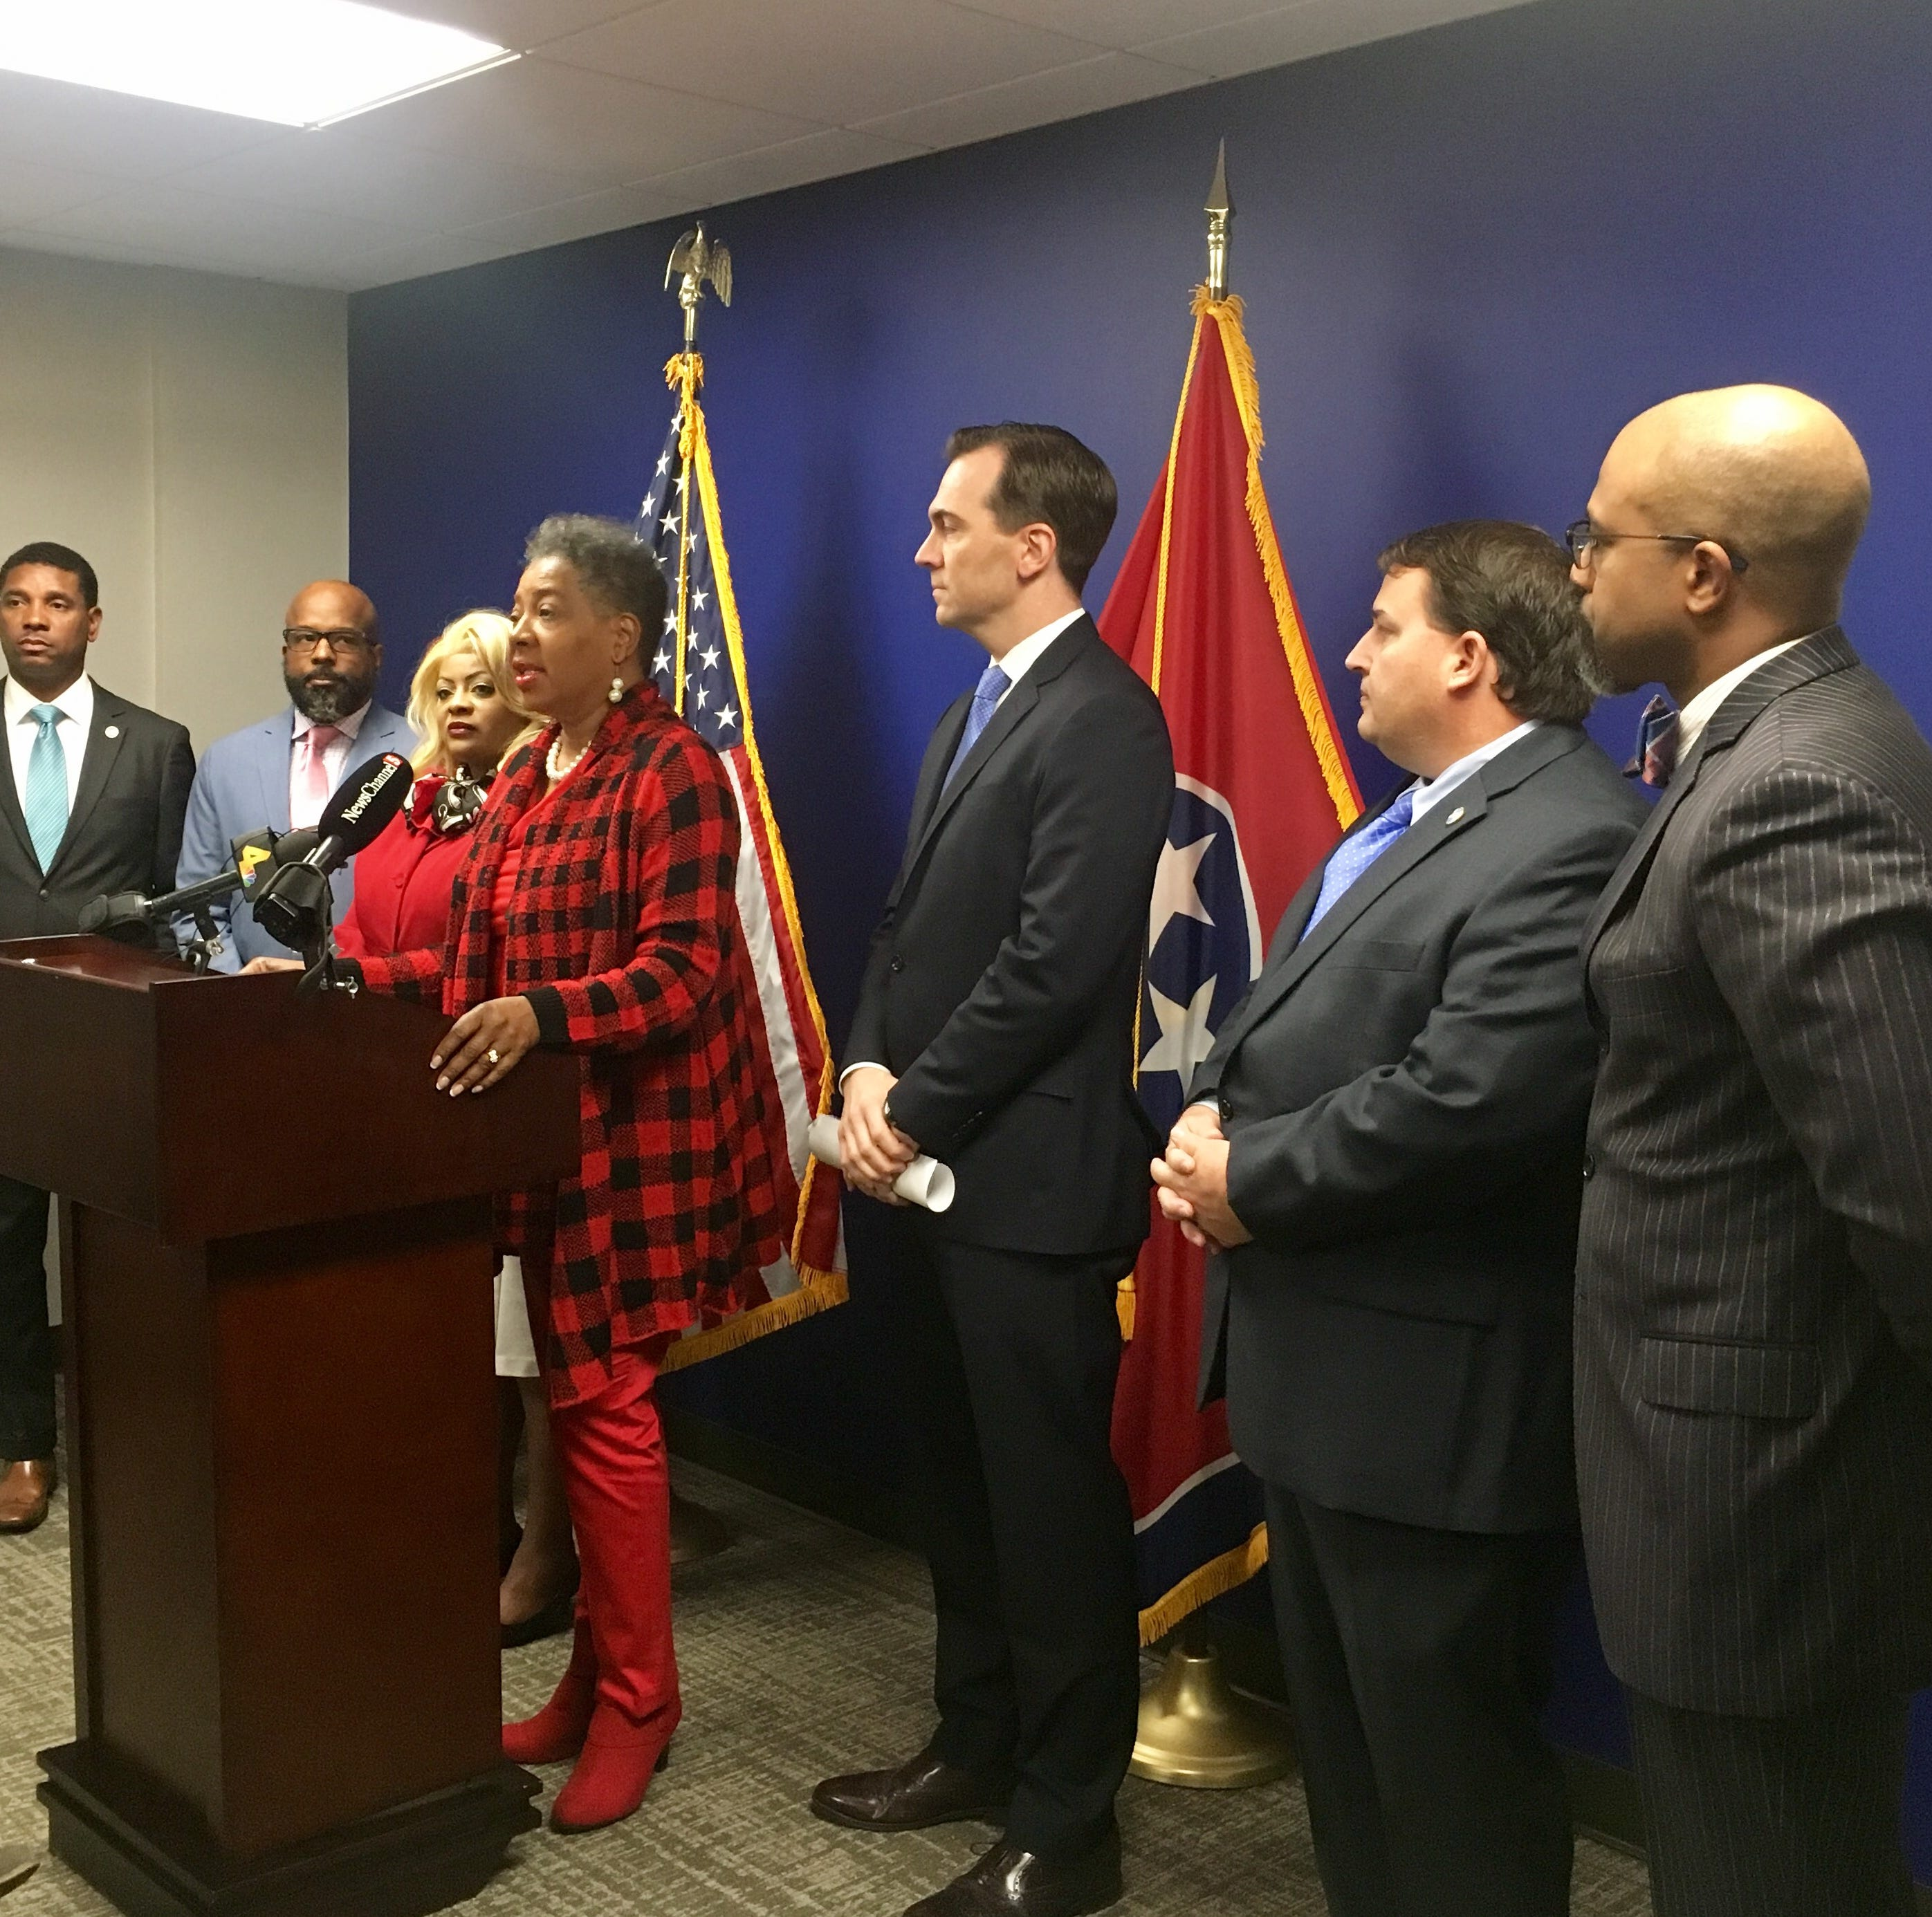 Democratic lawmakers gather for a news conference Dec. 14, 2018 to ask Gov. Haslam to grant clemency to Cyntoia Brown.